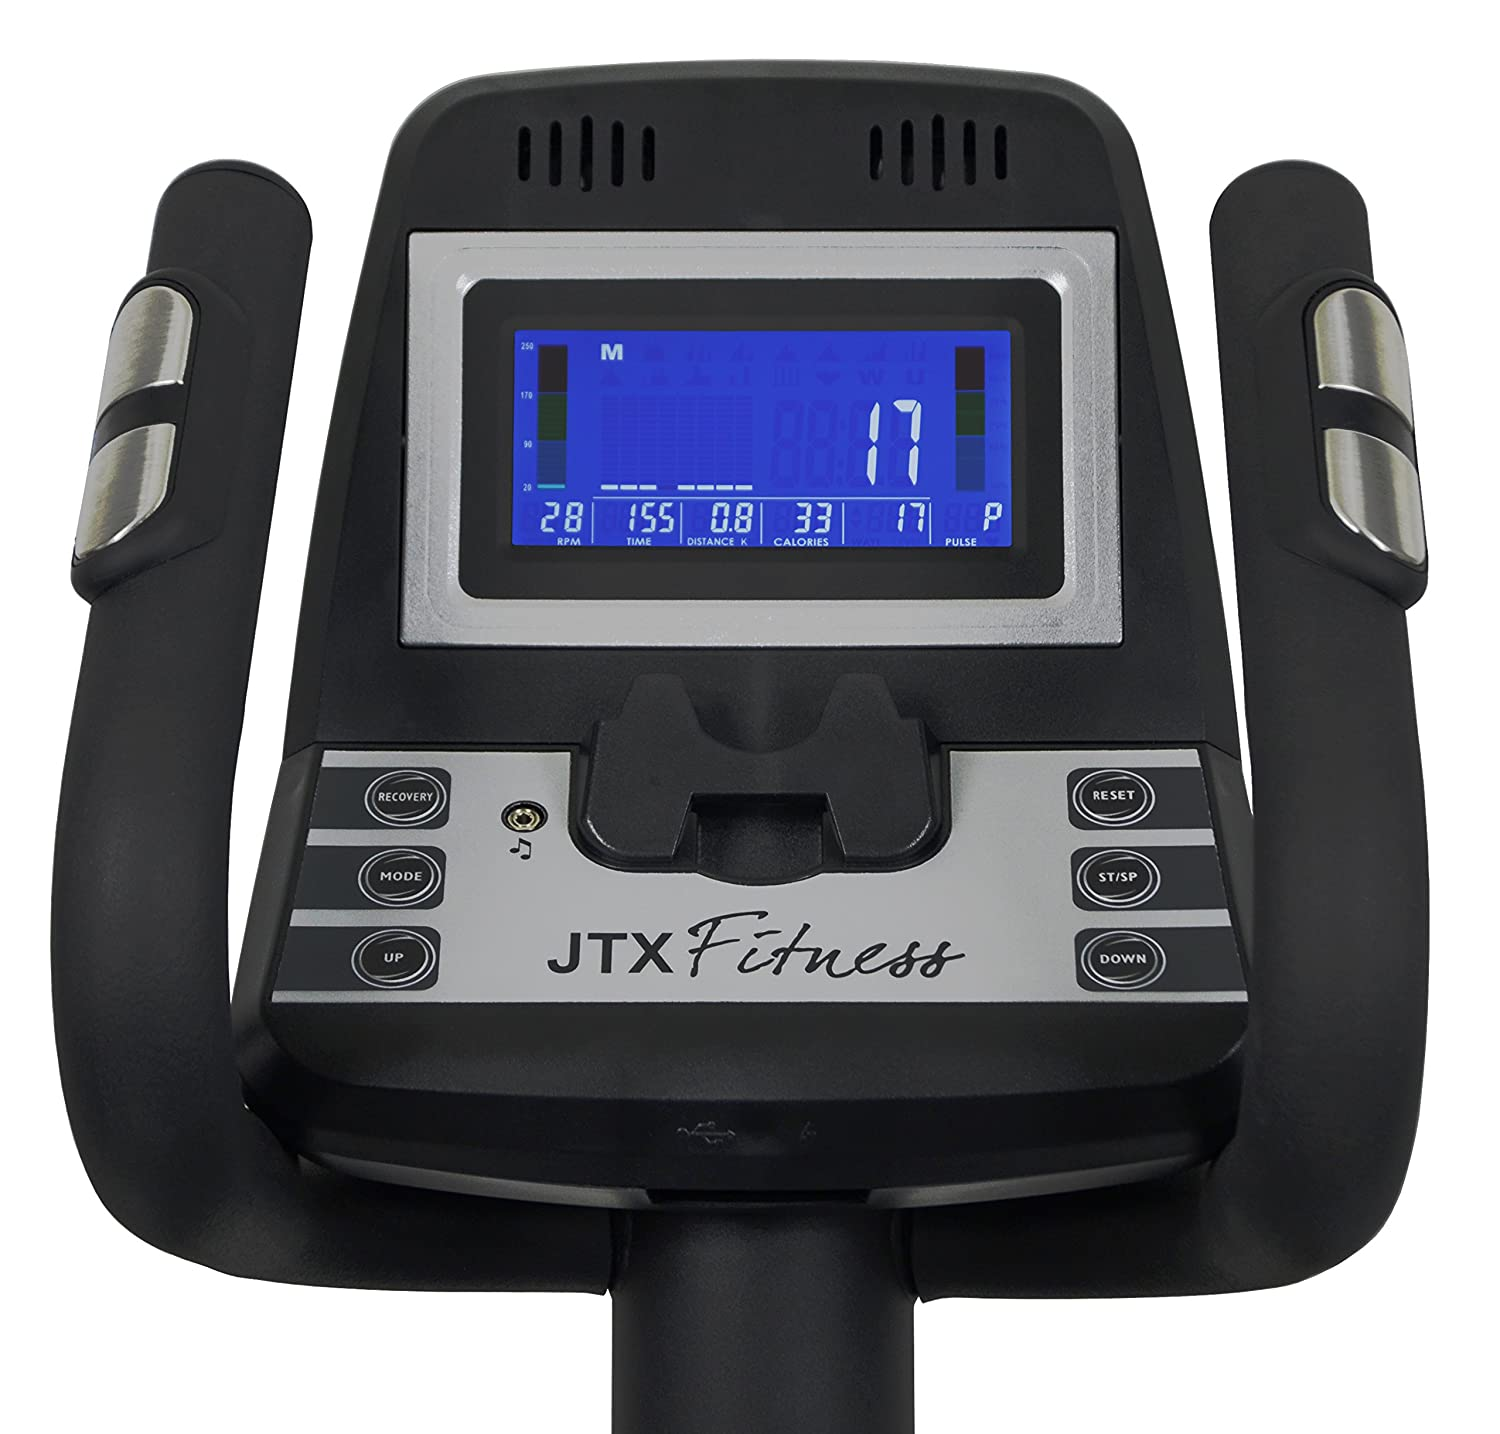 JTX Tri-Fit Cross Trainer display